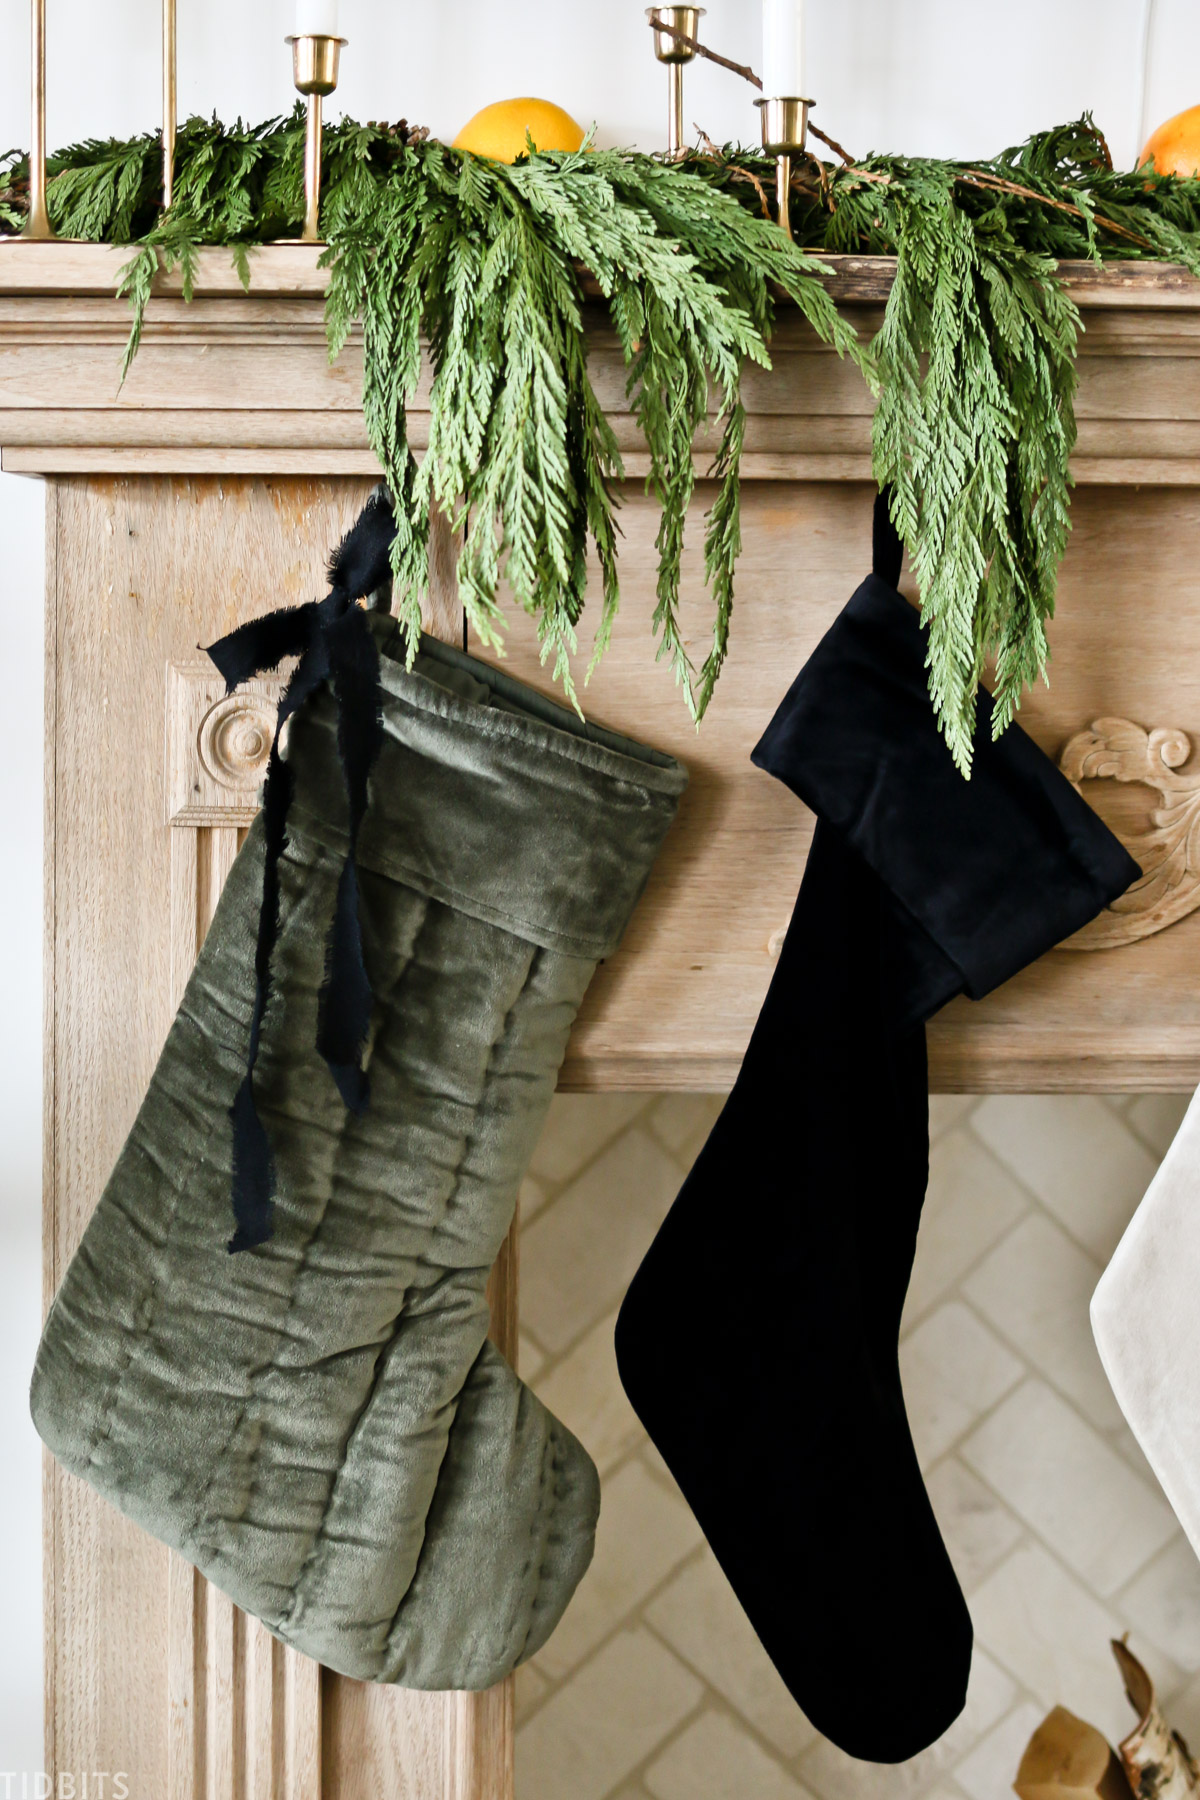 two Christmas stockings hanging from mantel